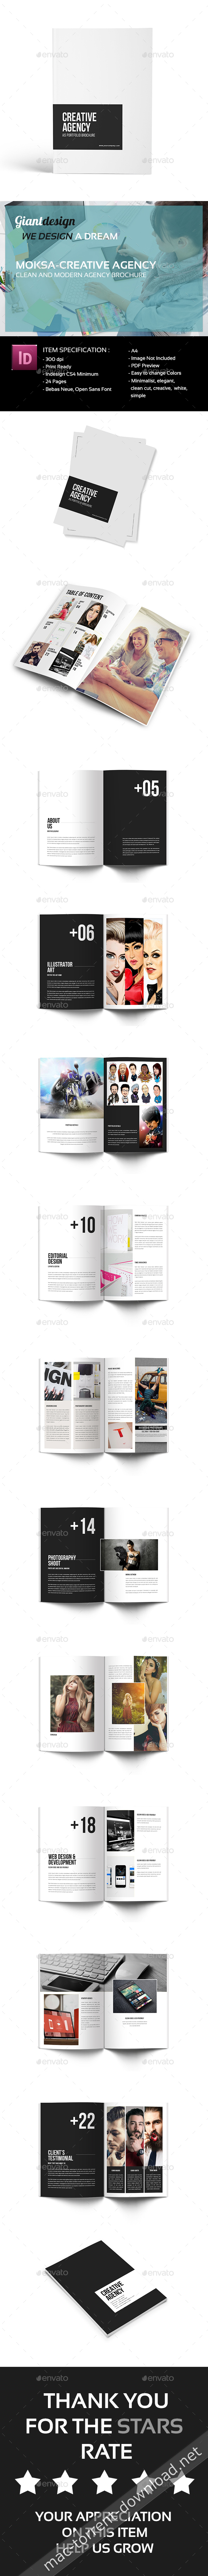 graphicriver_creative_agency_a4_portfolio_brochure_19529923